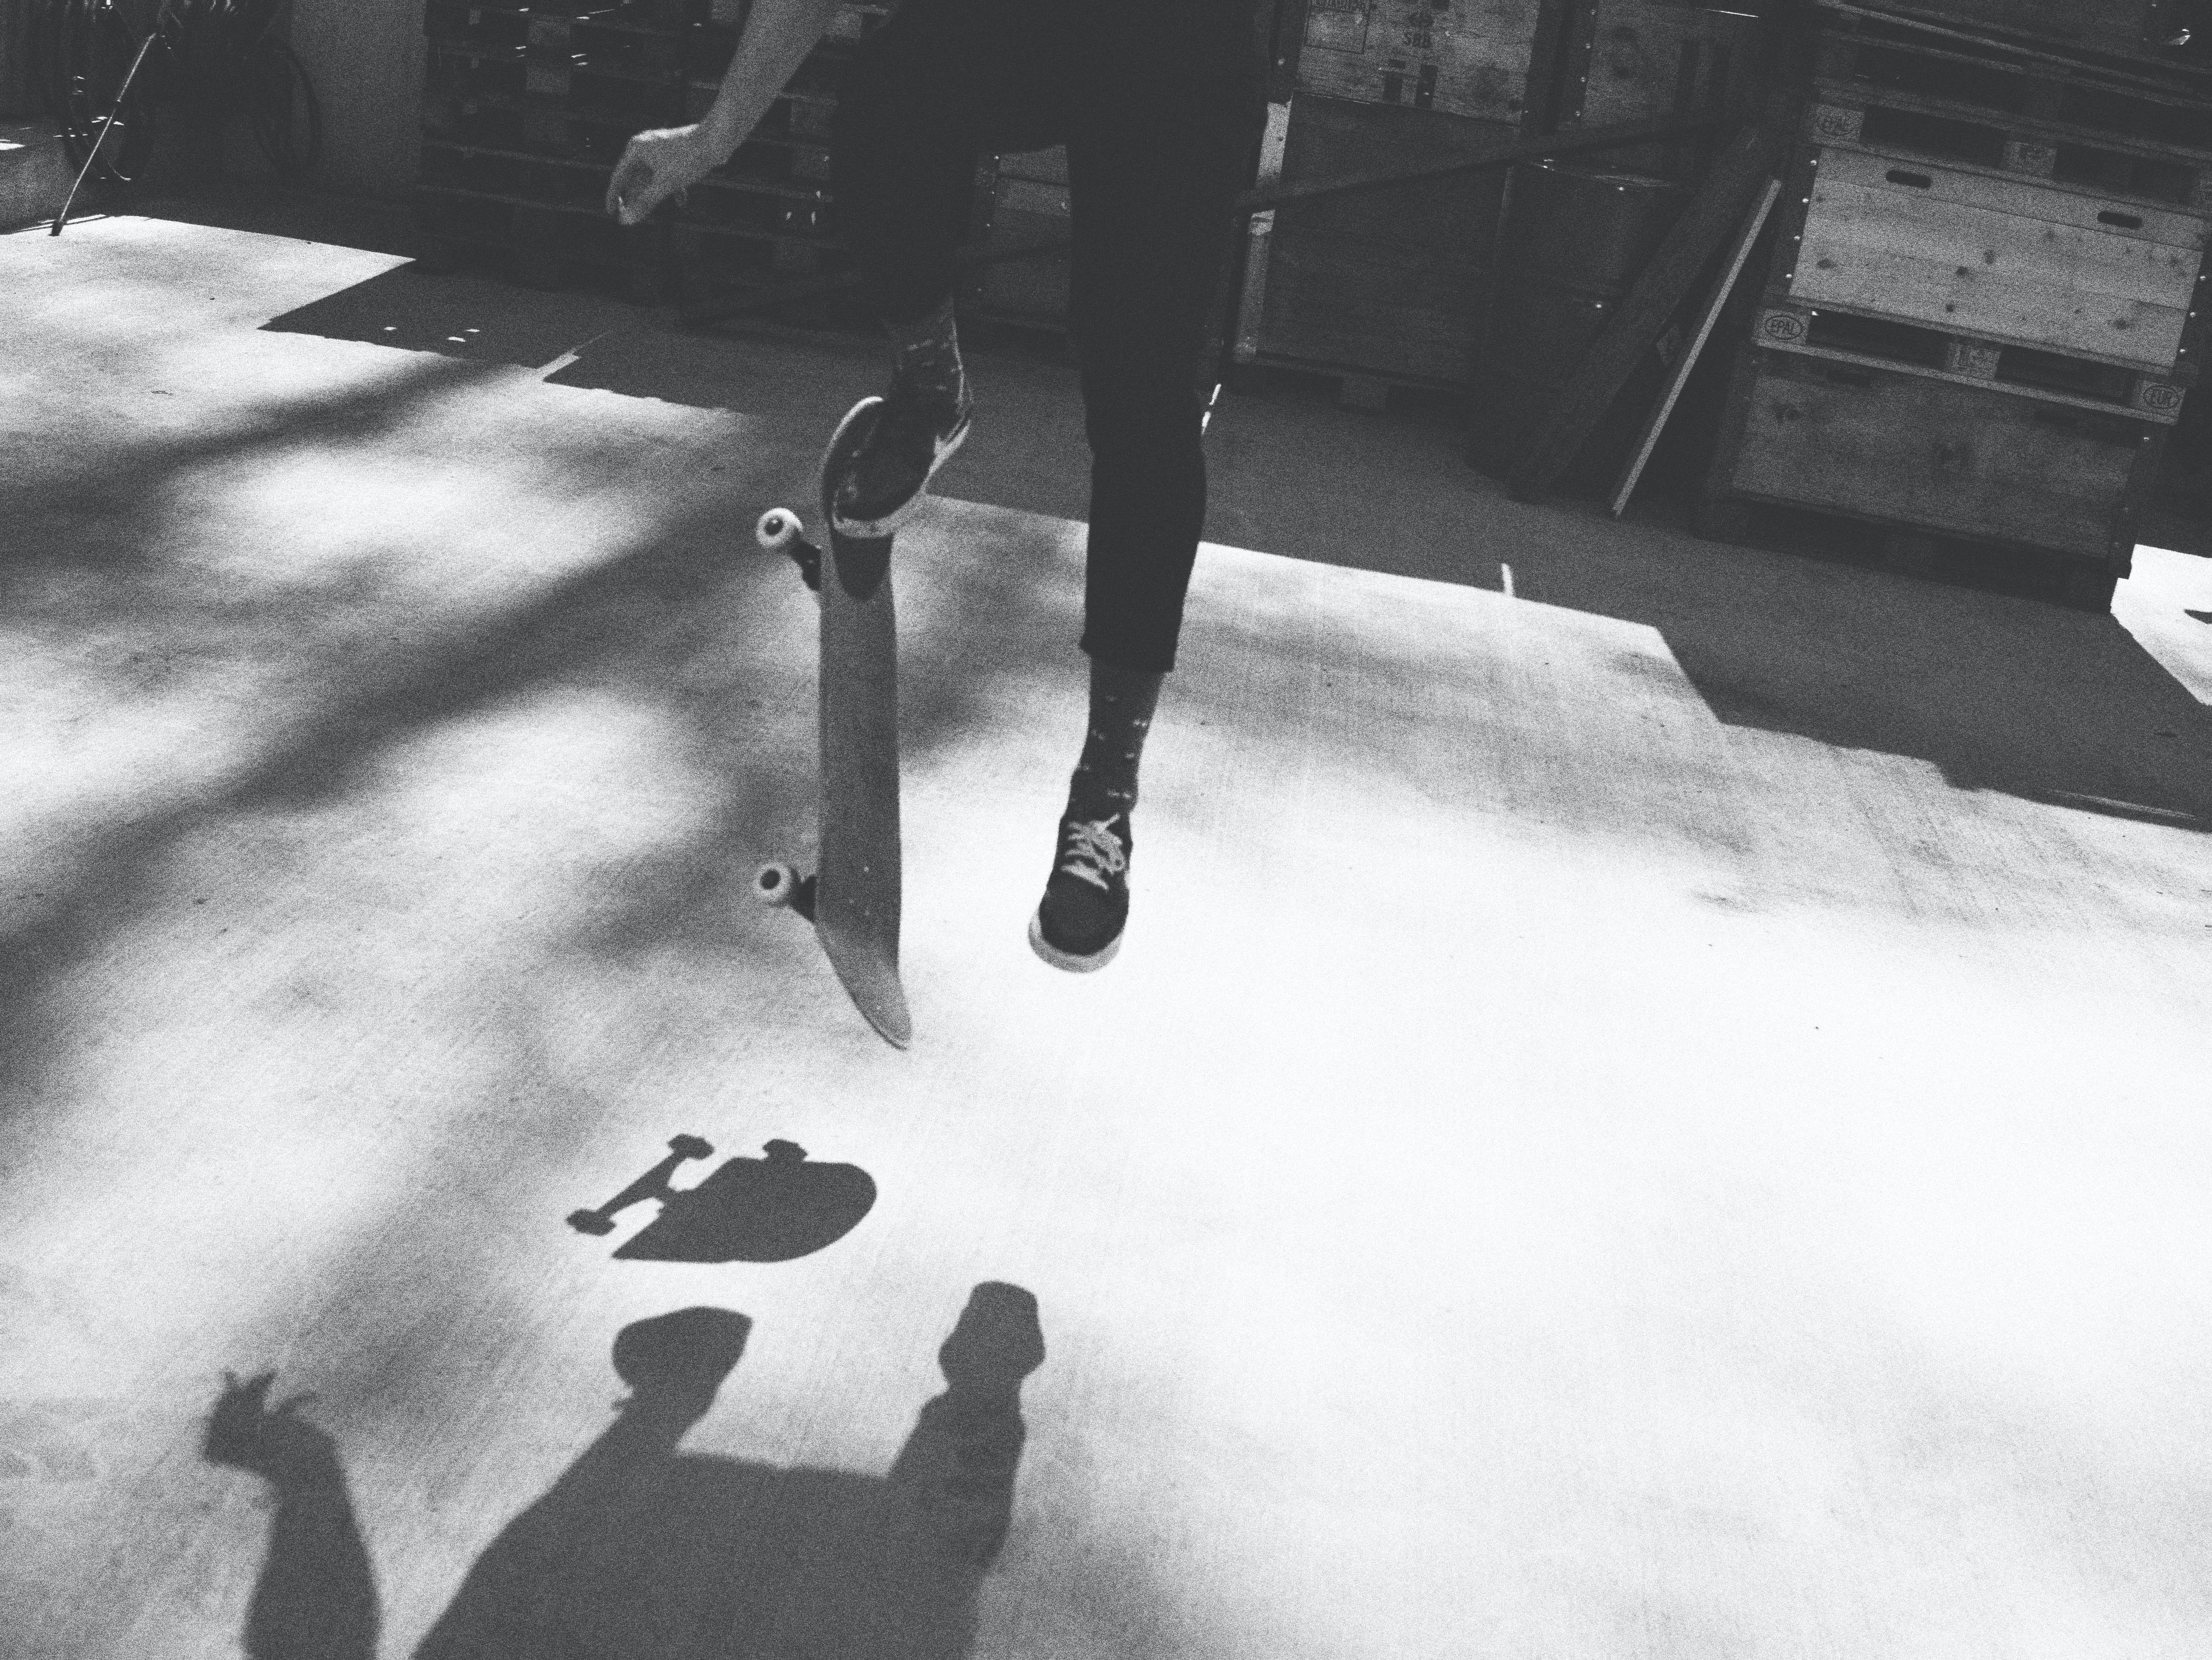 grayscale photography of person doing skateboard tricks